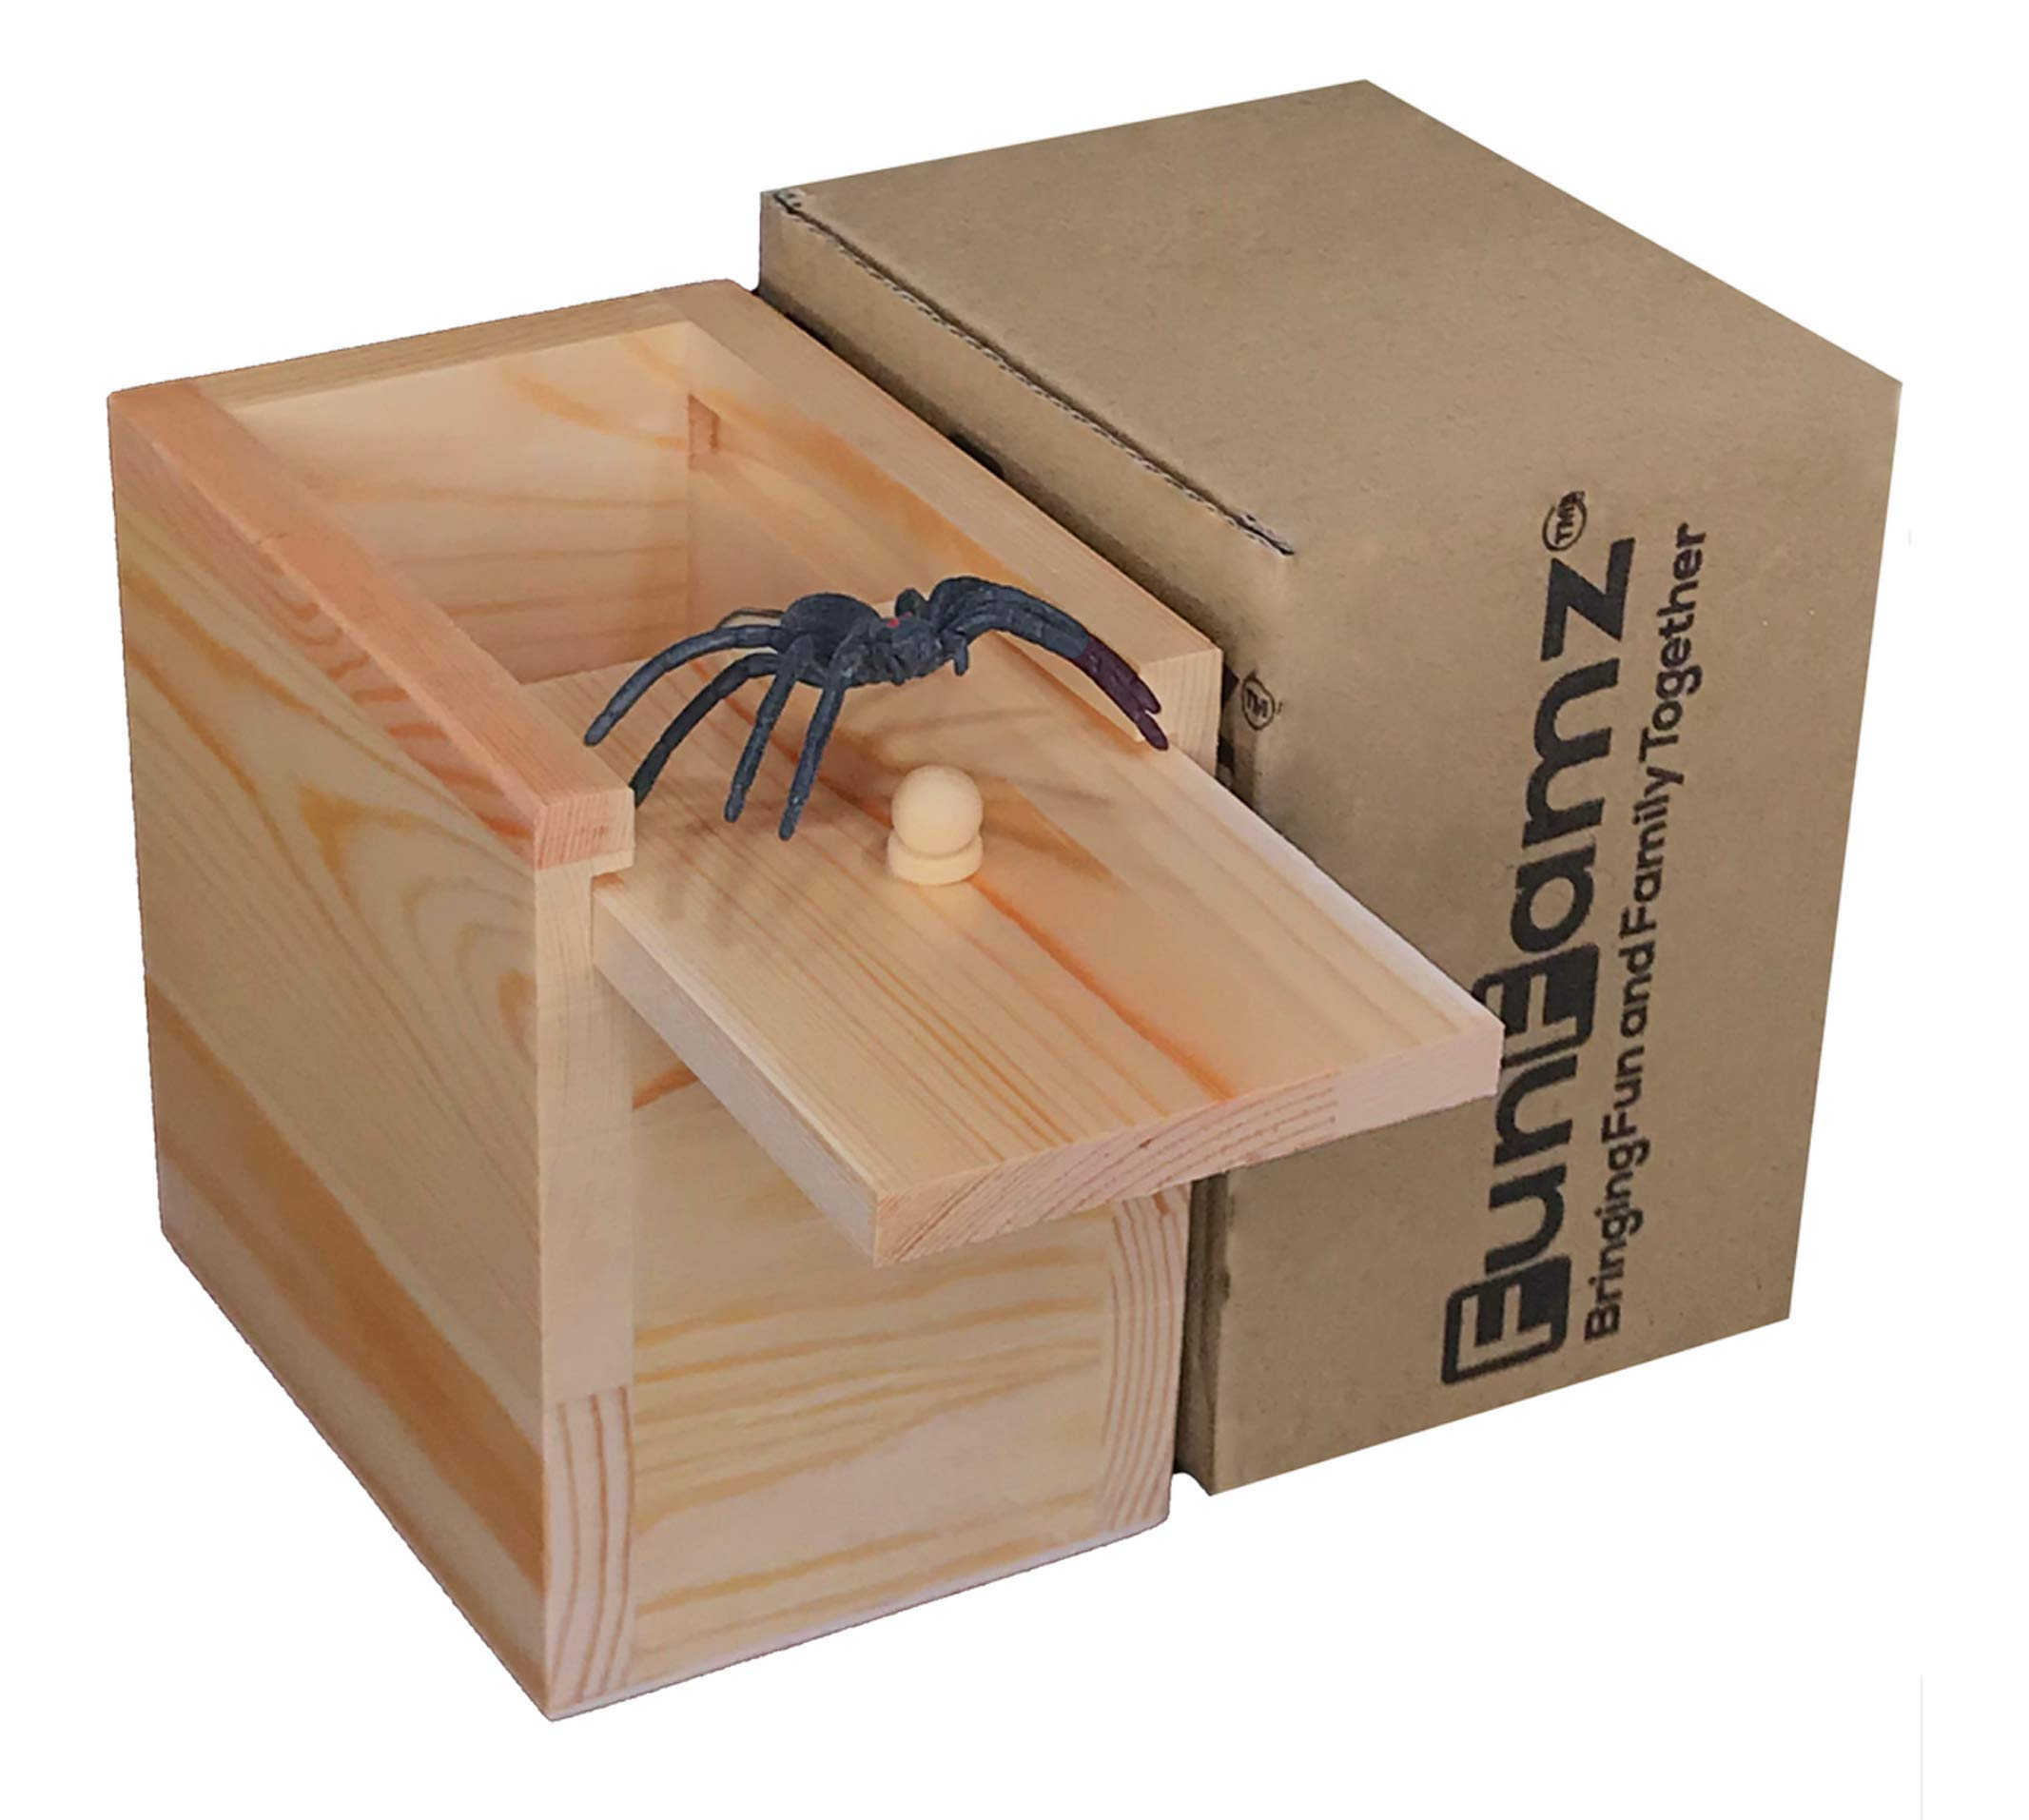 The Original Spider Prank Box- Hilarious Wooden Box Toy Prank, Funny Money Gift Box Surprise Toy, and Christmas Gag Gift Prank for Boys, Girls, Adults by FunFamz by FunFamz (Image #9)